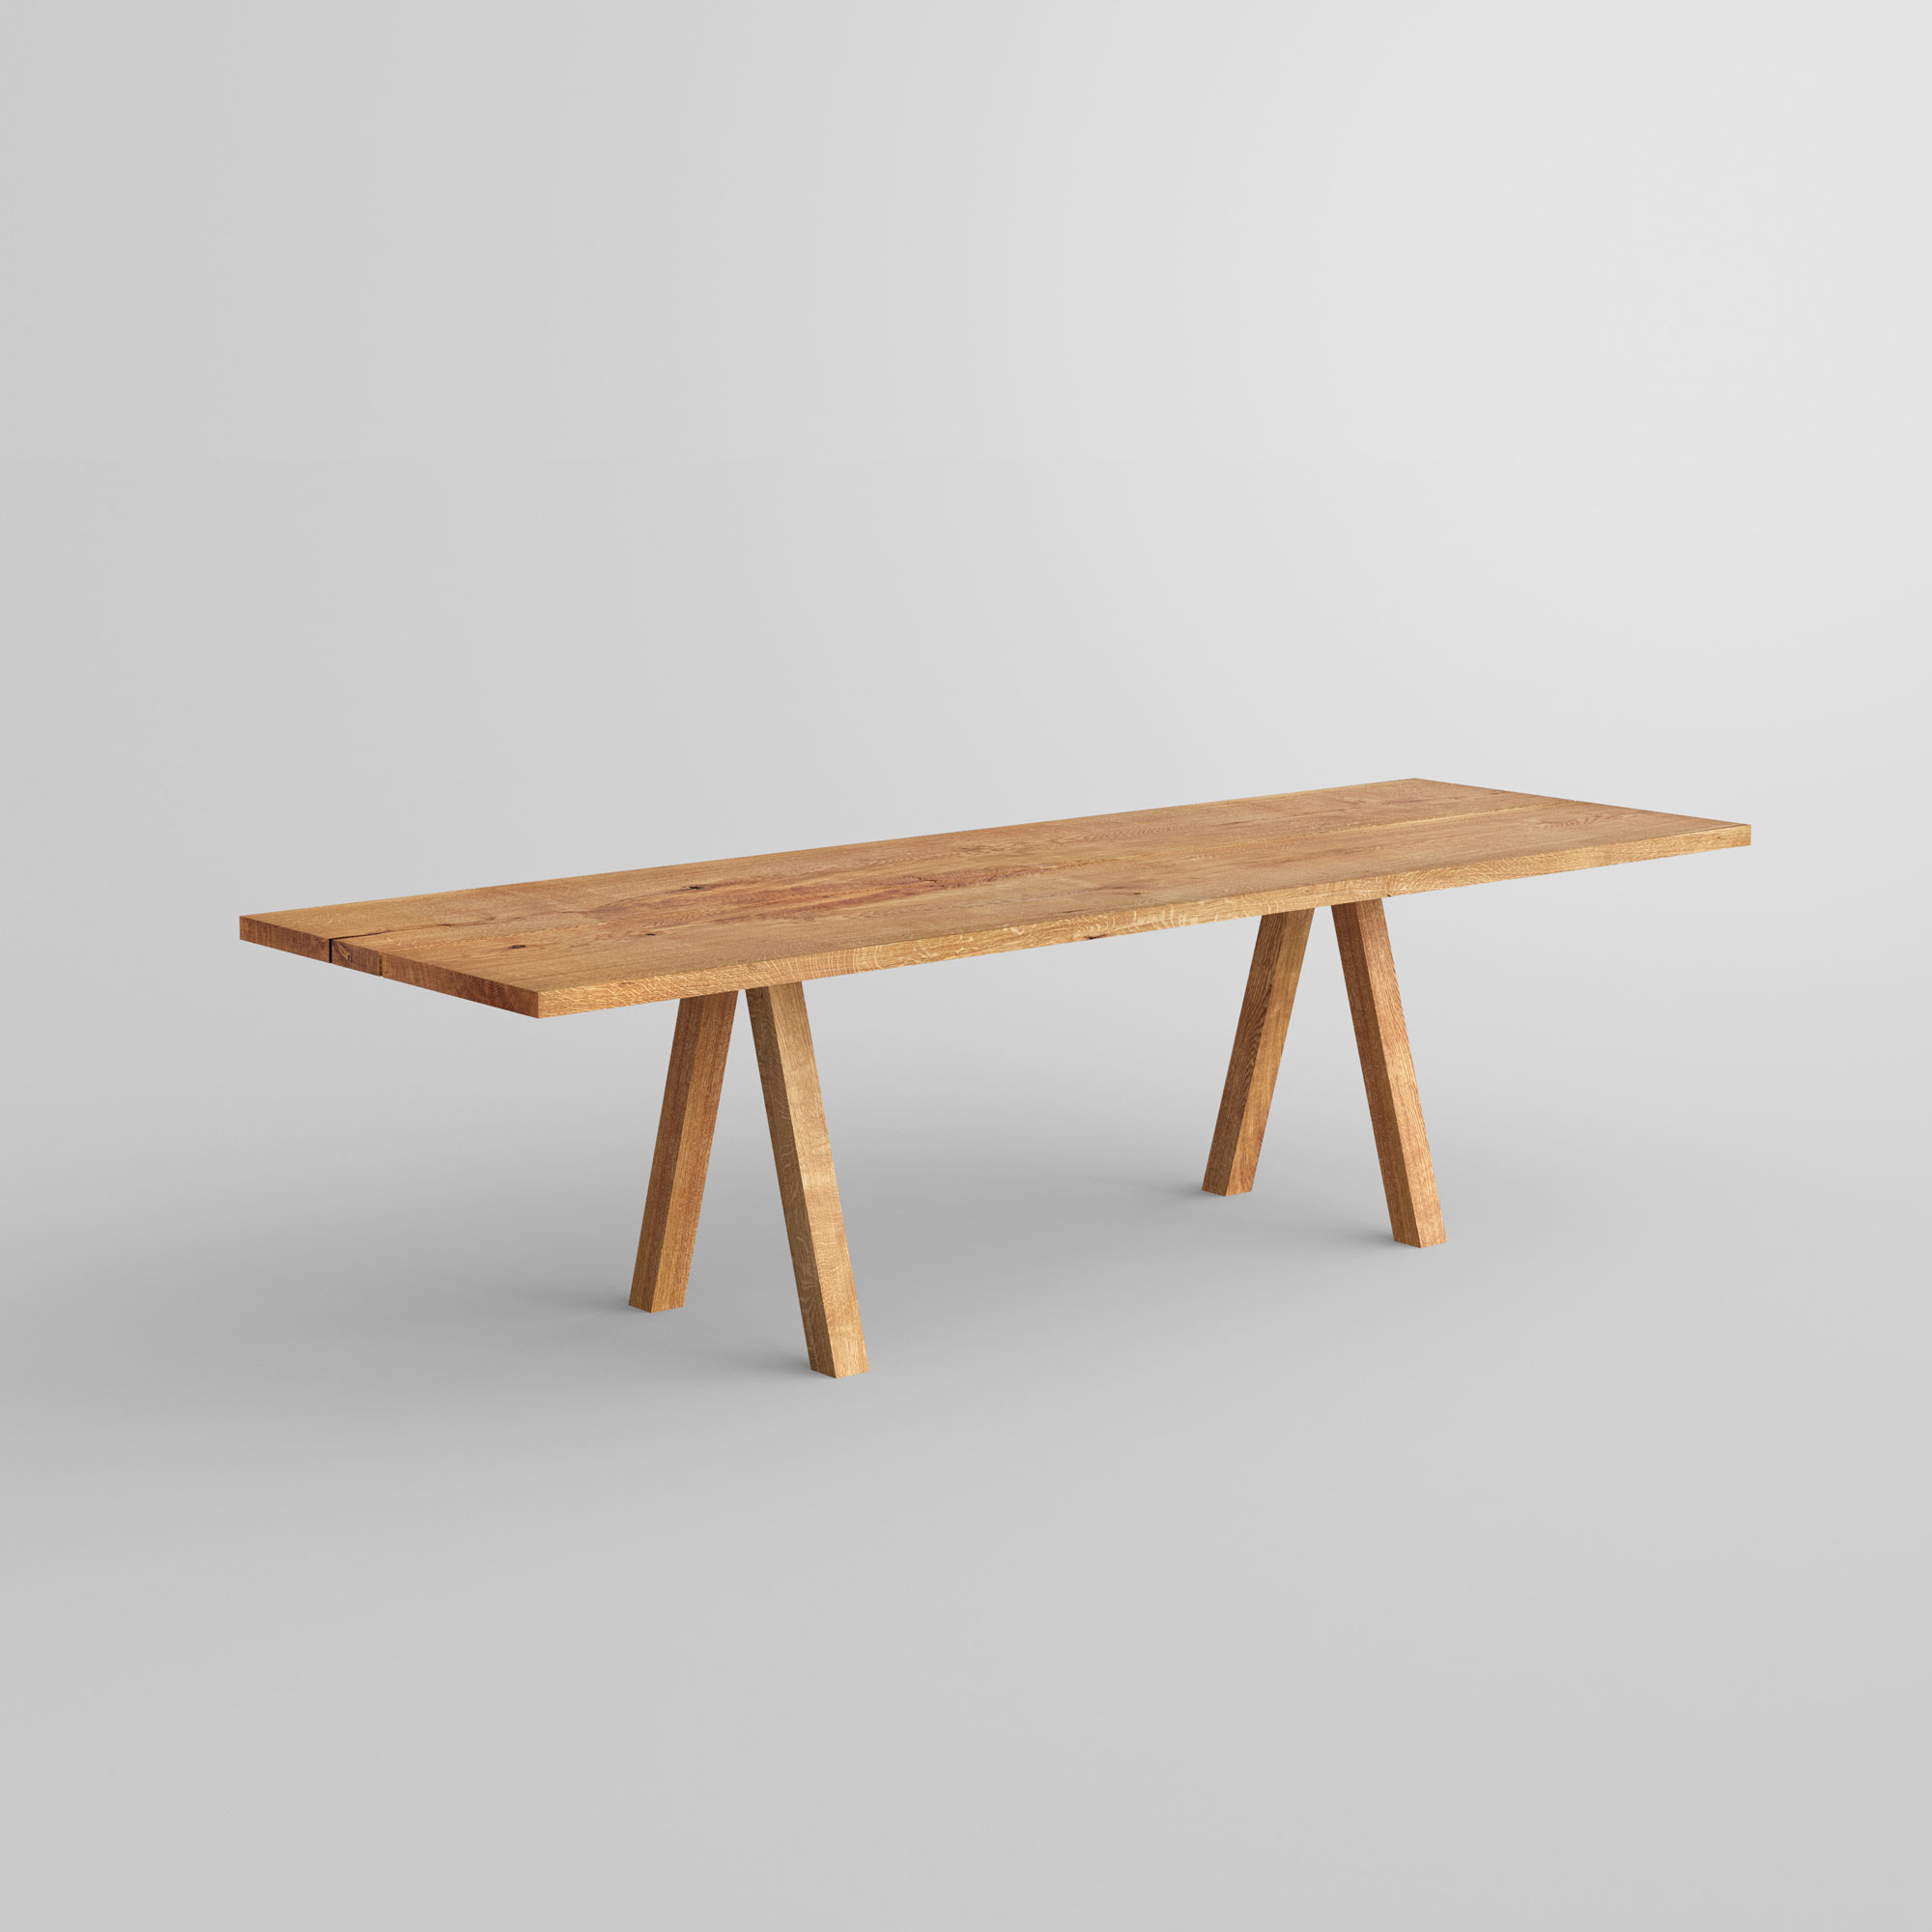 Designer Tree Trunk Table PAPILIO SIMPLE STAEIO custom made in solid wood by vitamin design